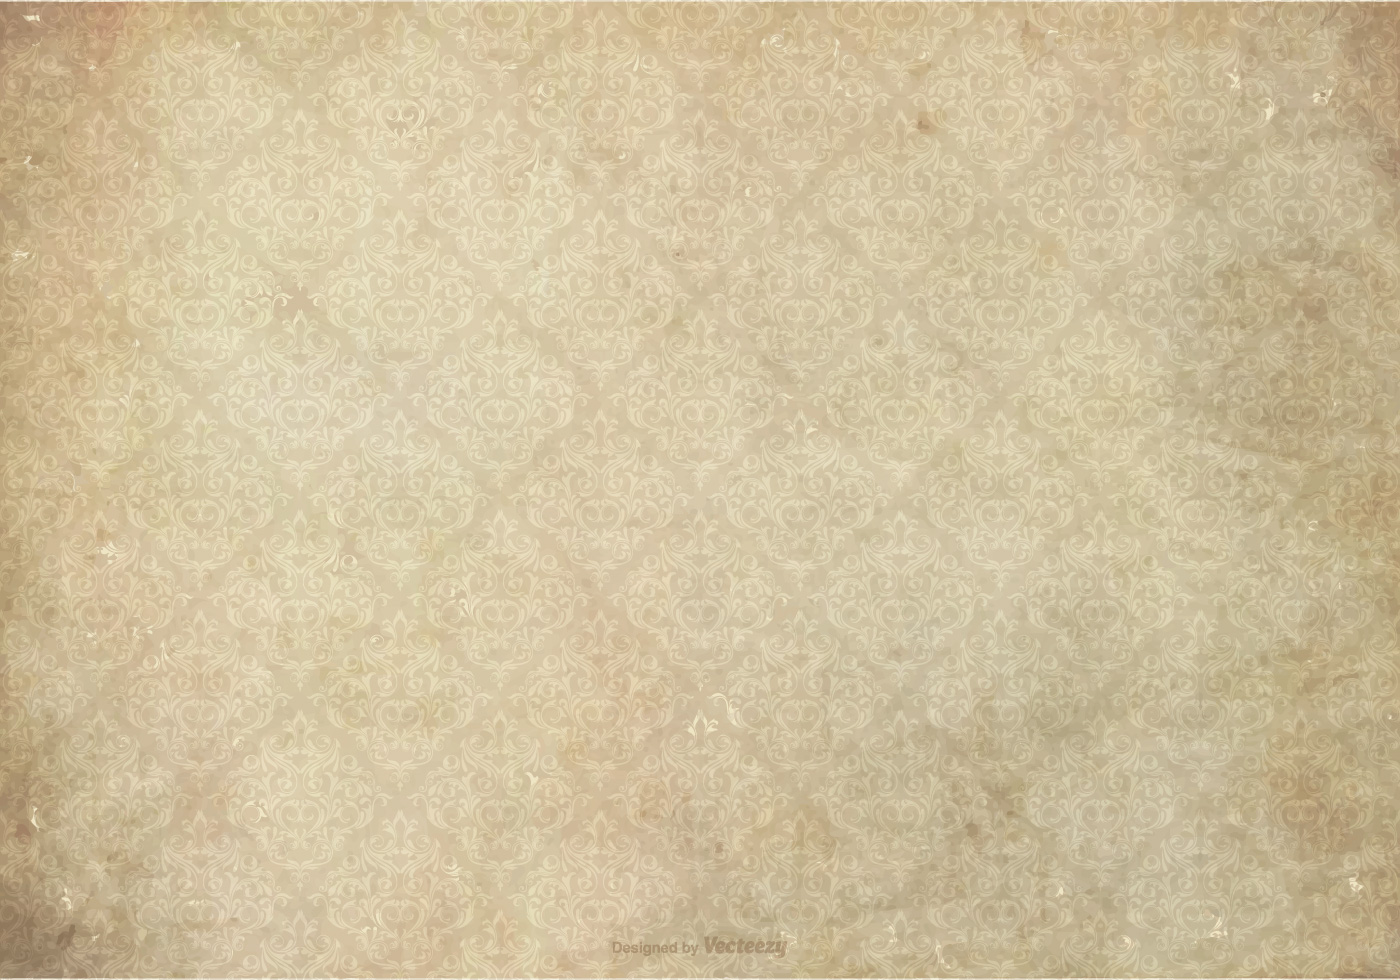 vintage style grunge background download free vector art